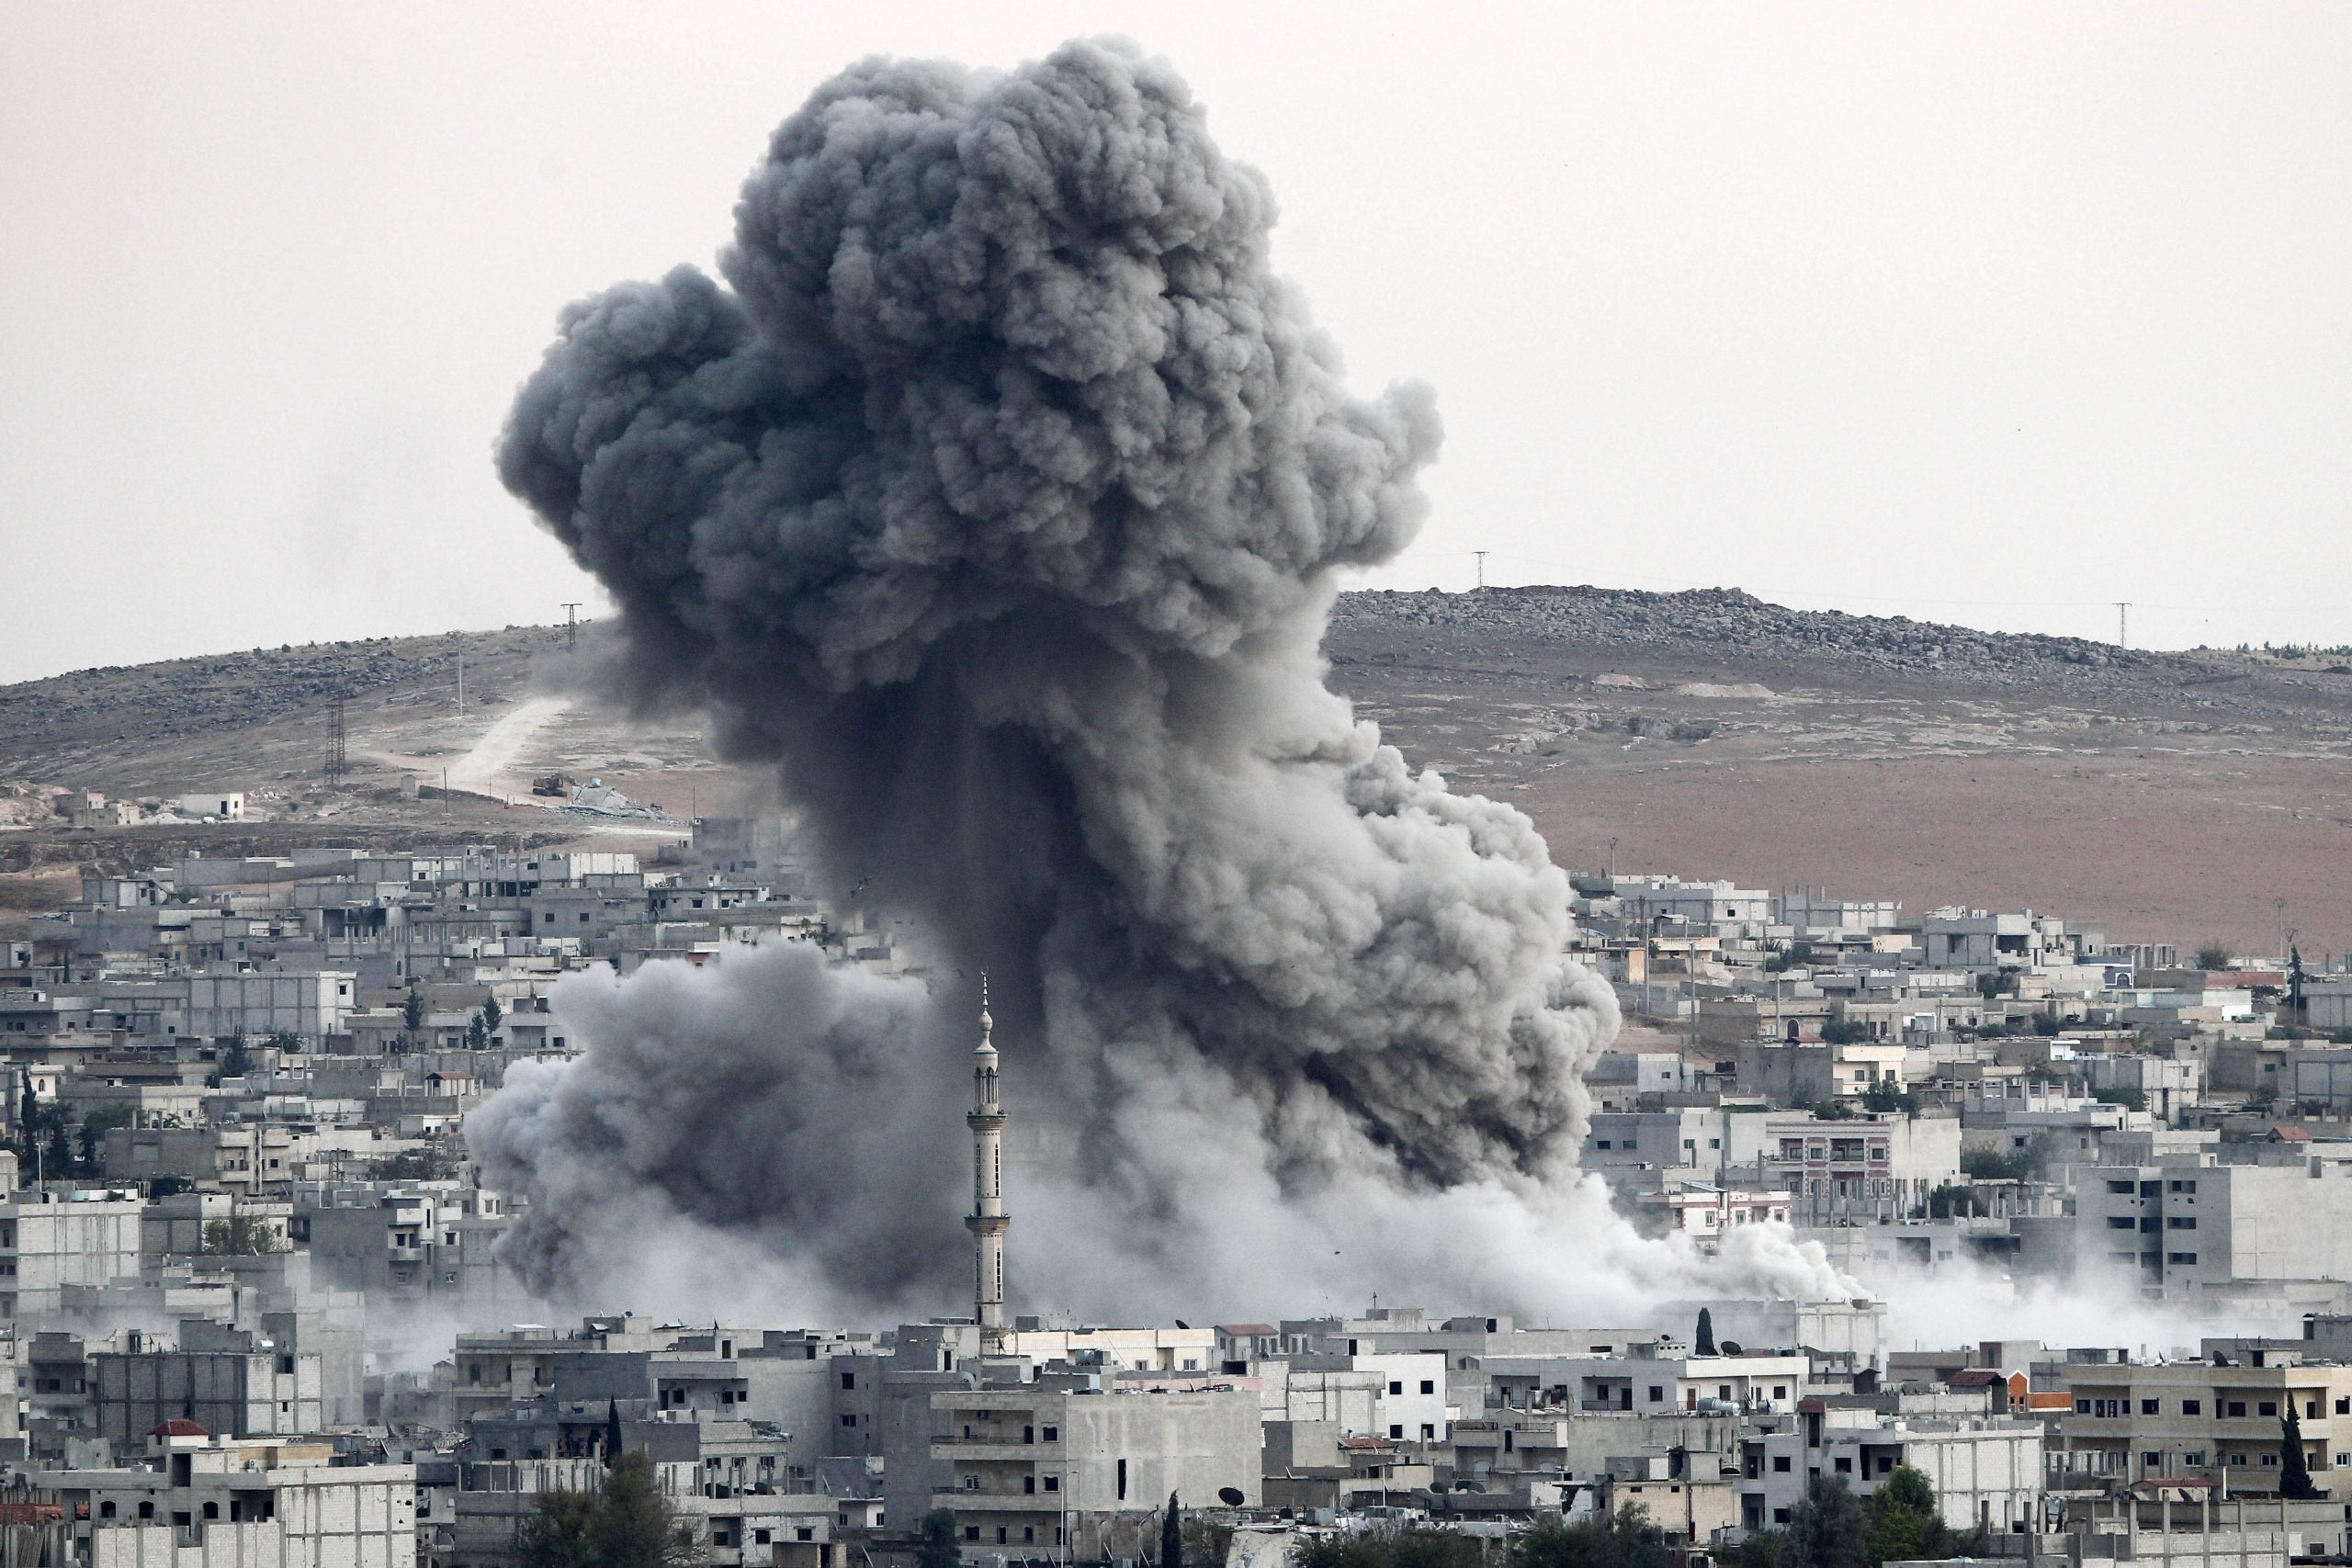 The new air strikes on Syria will compel even more angry young men to join the jihad